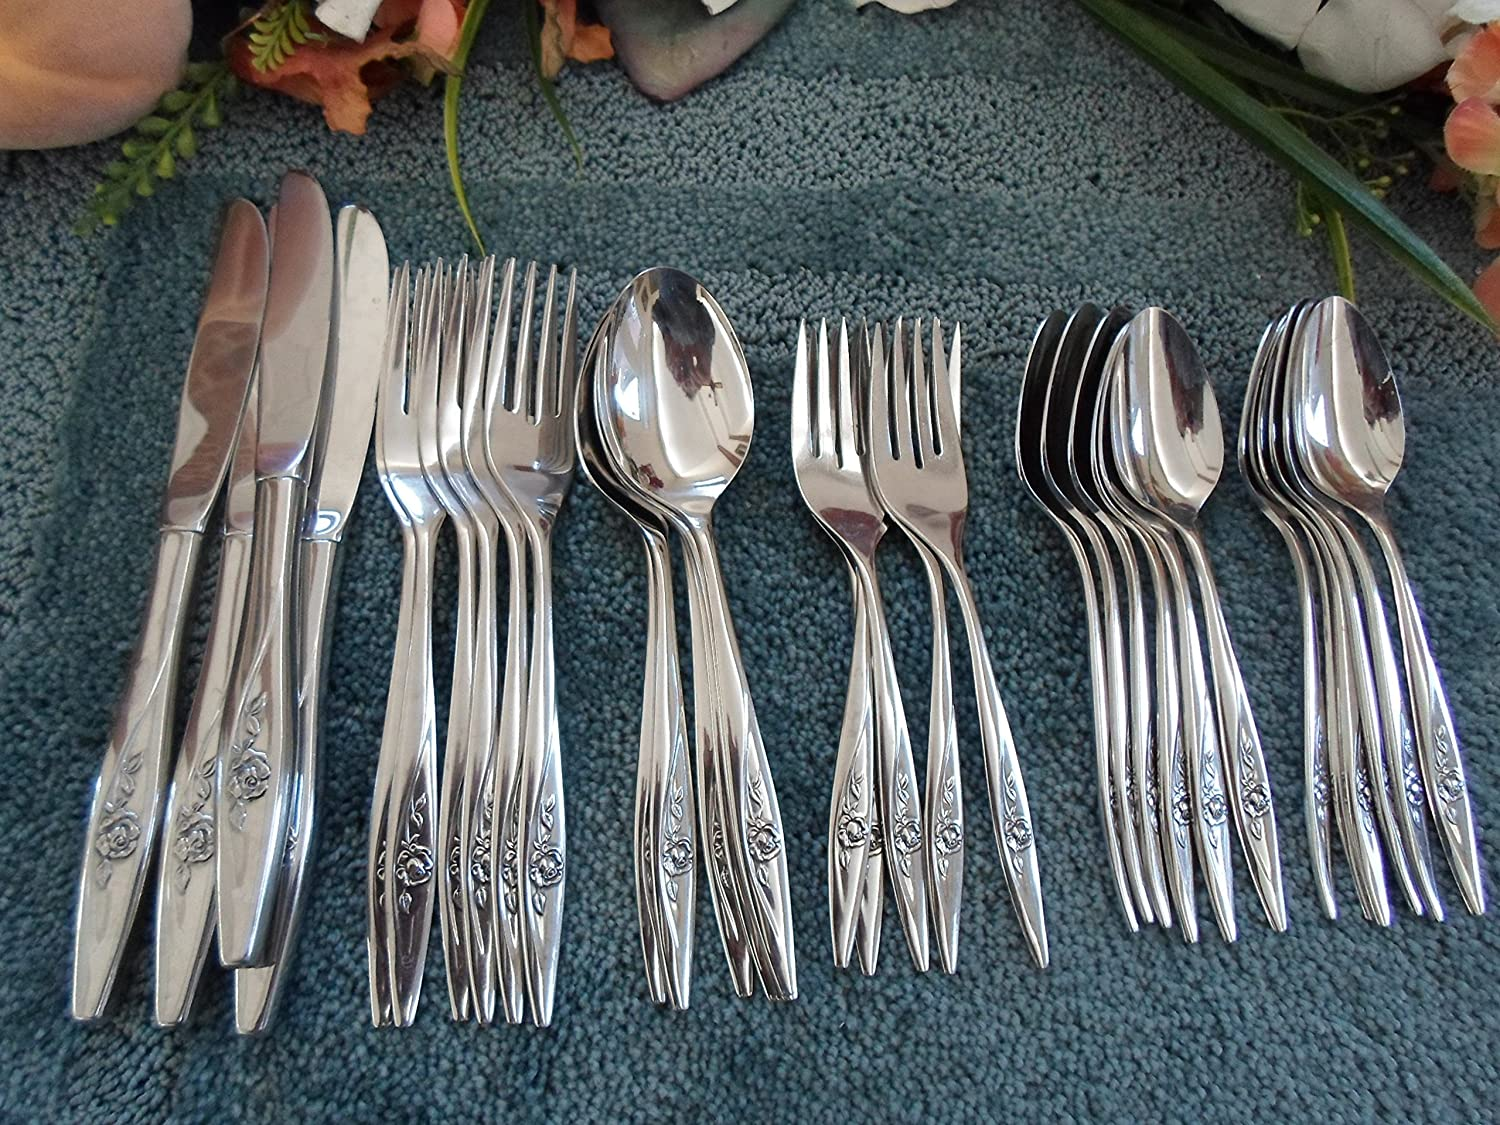 Vintage Oneidacraft Chateau Deluxe Stainless Flatware